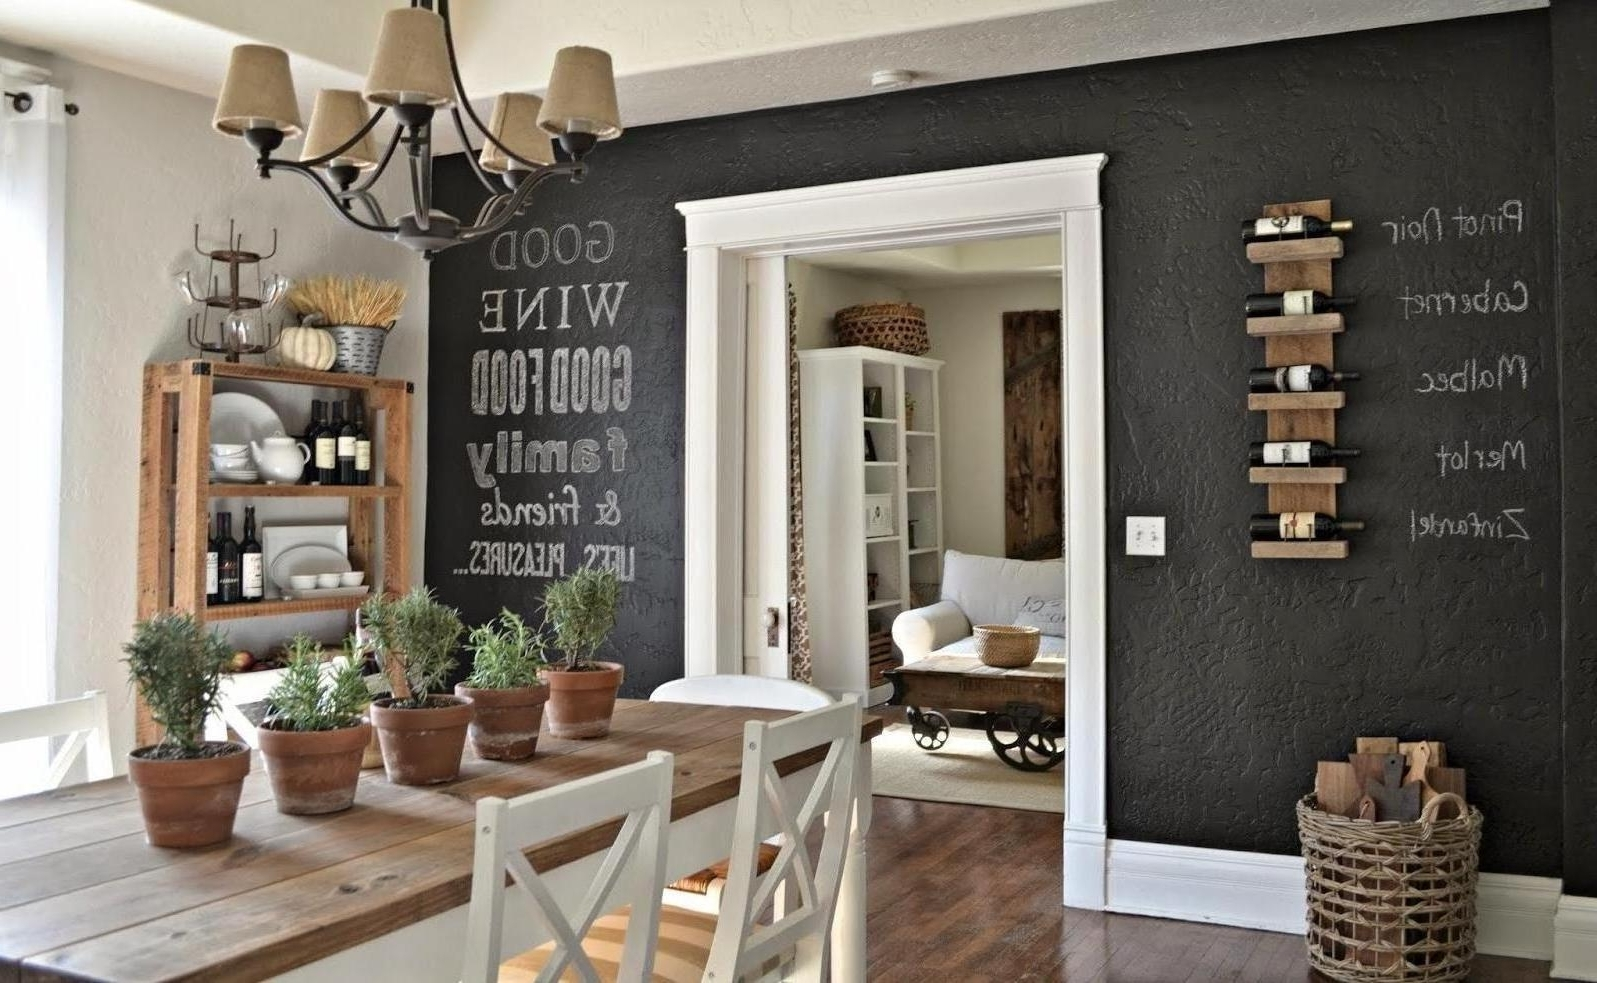 Creative Dining Room Wall Decor – Dining Room Wall Decor Concept Within Recent Dining Room Wall Accents (Gallery 2 of 15)